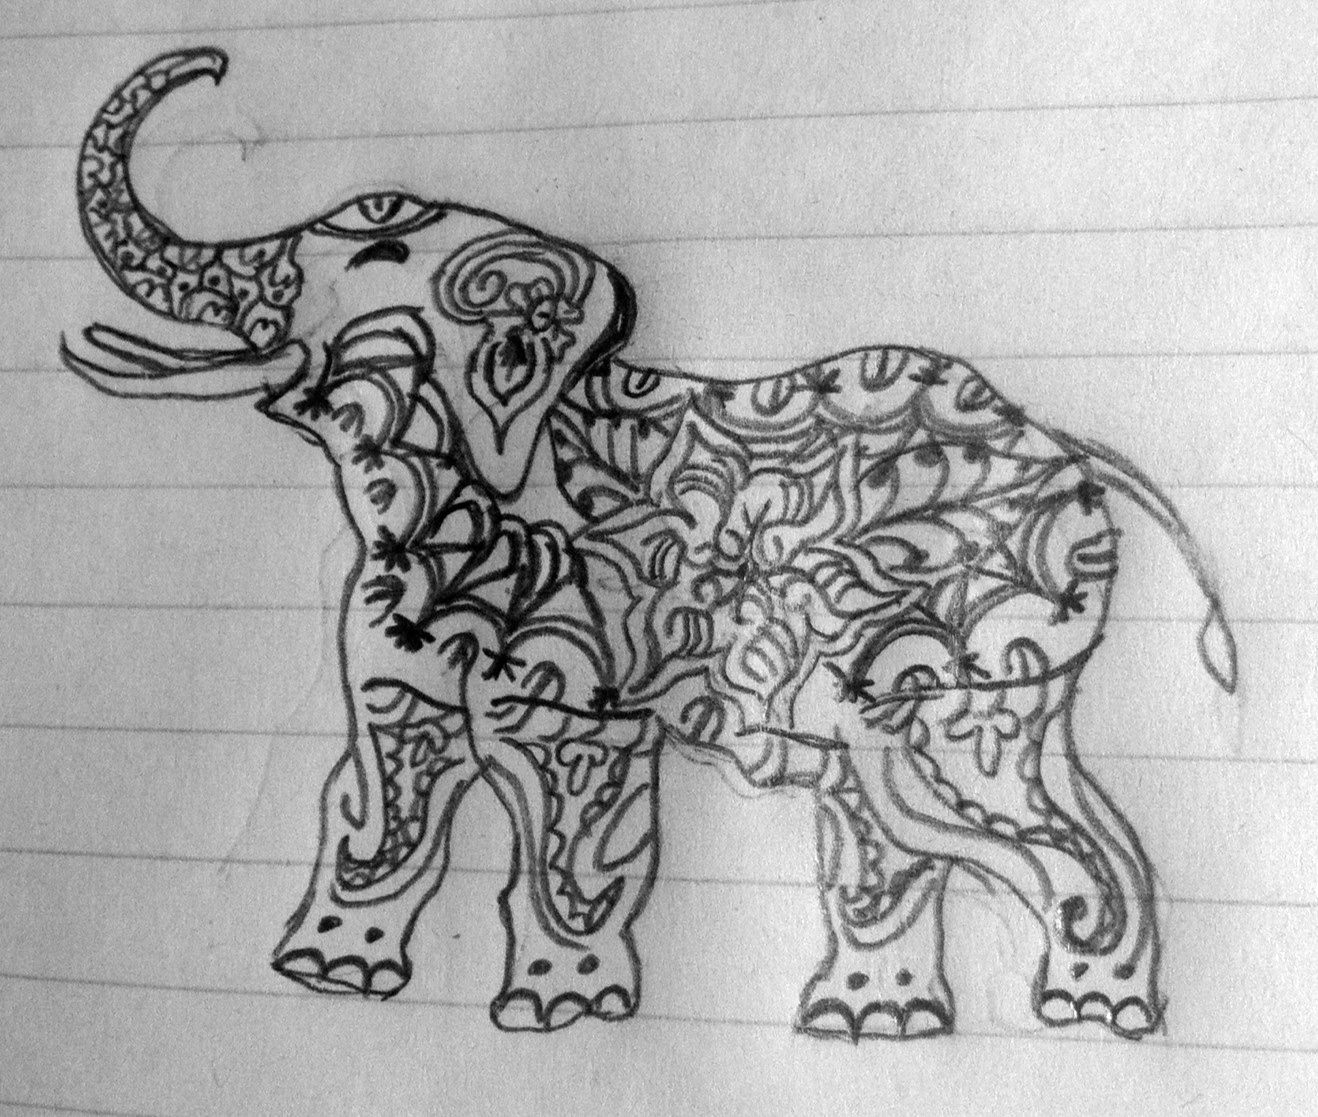 Elephant tattoos and designs elephant tattoo meanings and ideas if you are into animal tattoos or symbolic tattoos then you may want to consider the beautiful elephant tattoo the elephant has been a symbolic character biocorpaavc Images